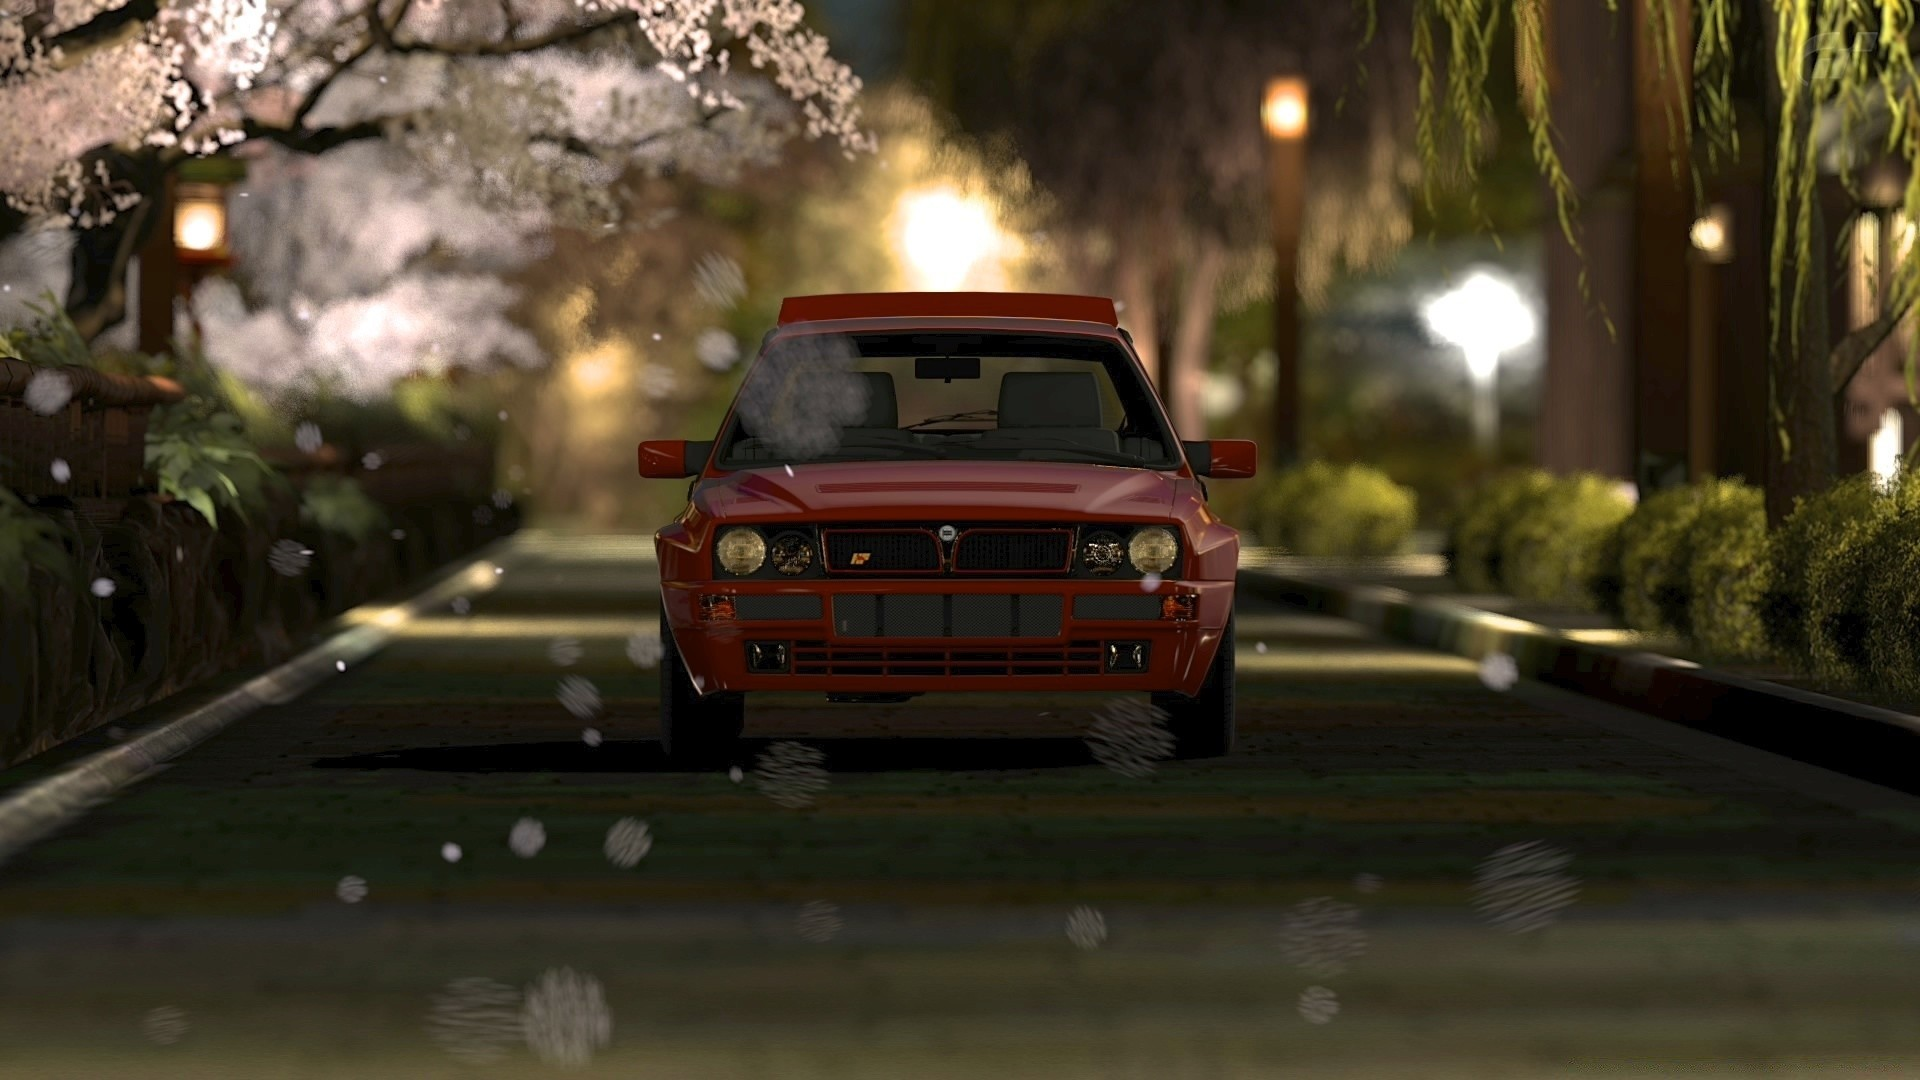 Gran Turismo 5 Lancia Delta Hf Integrale Android Wallpapers